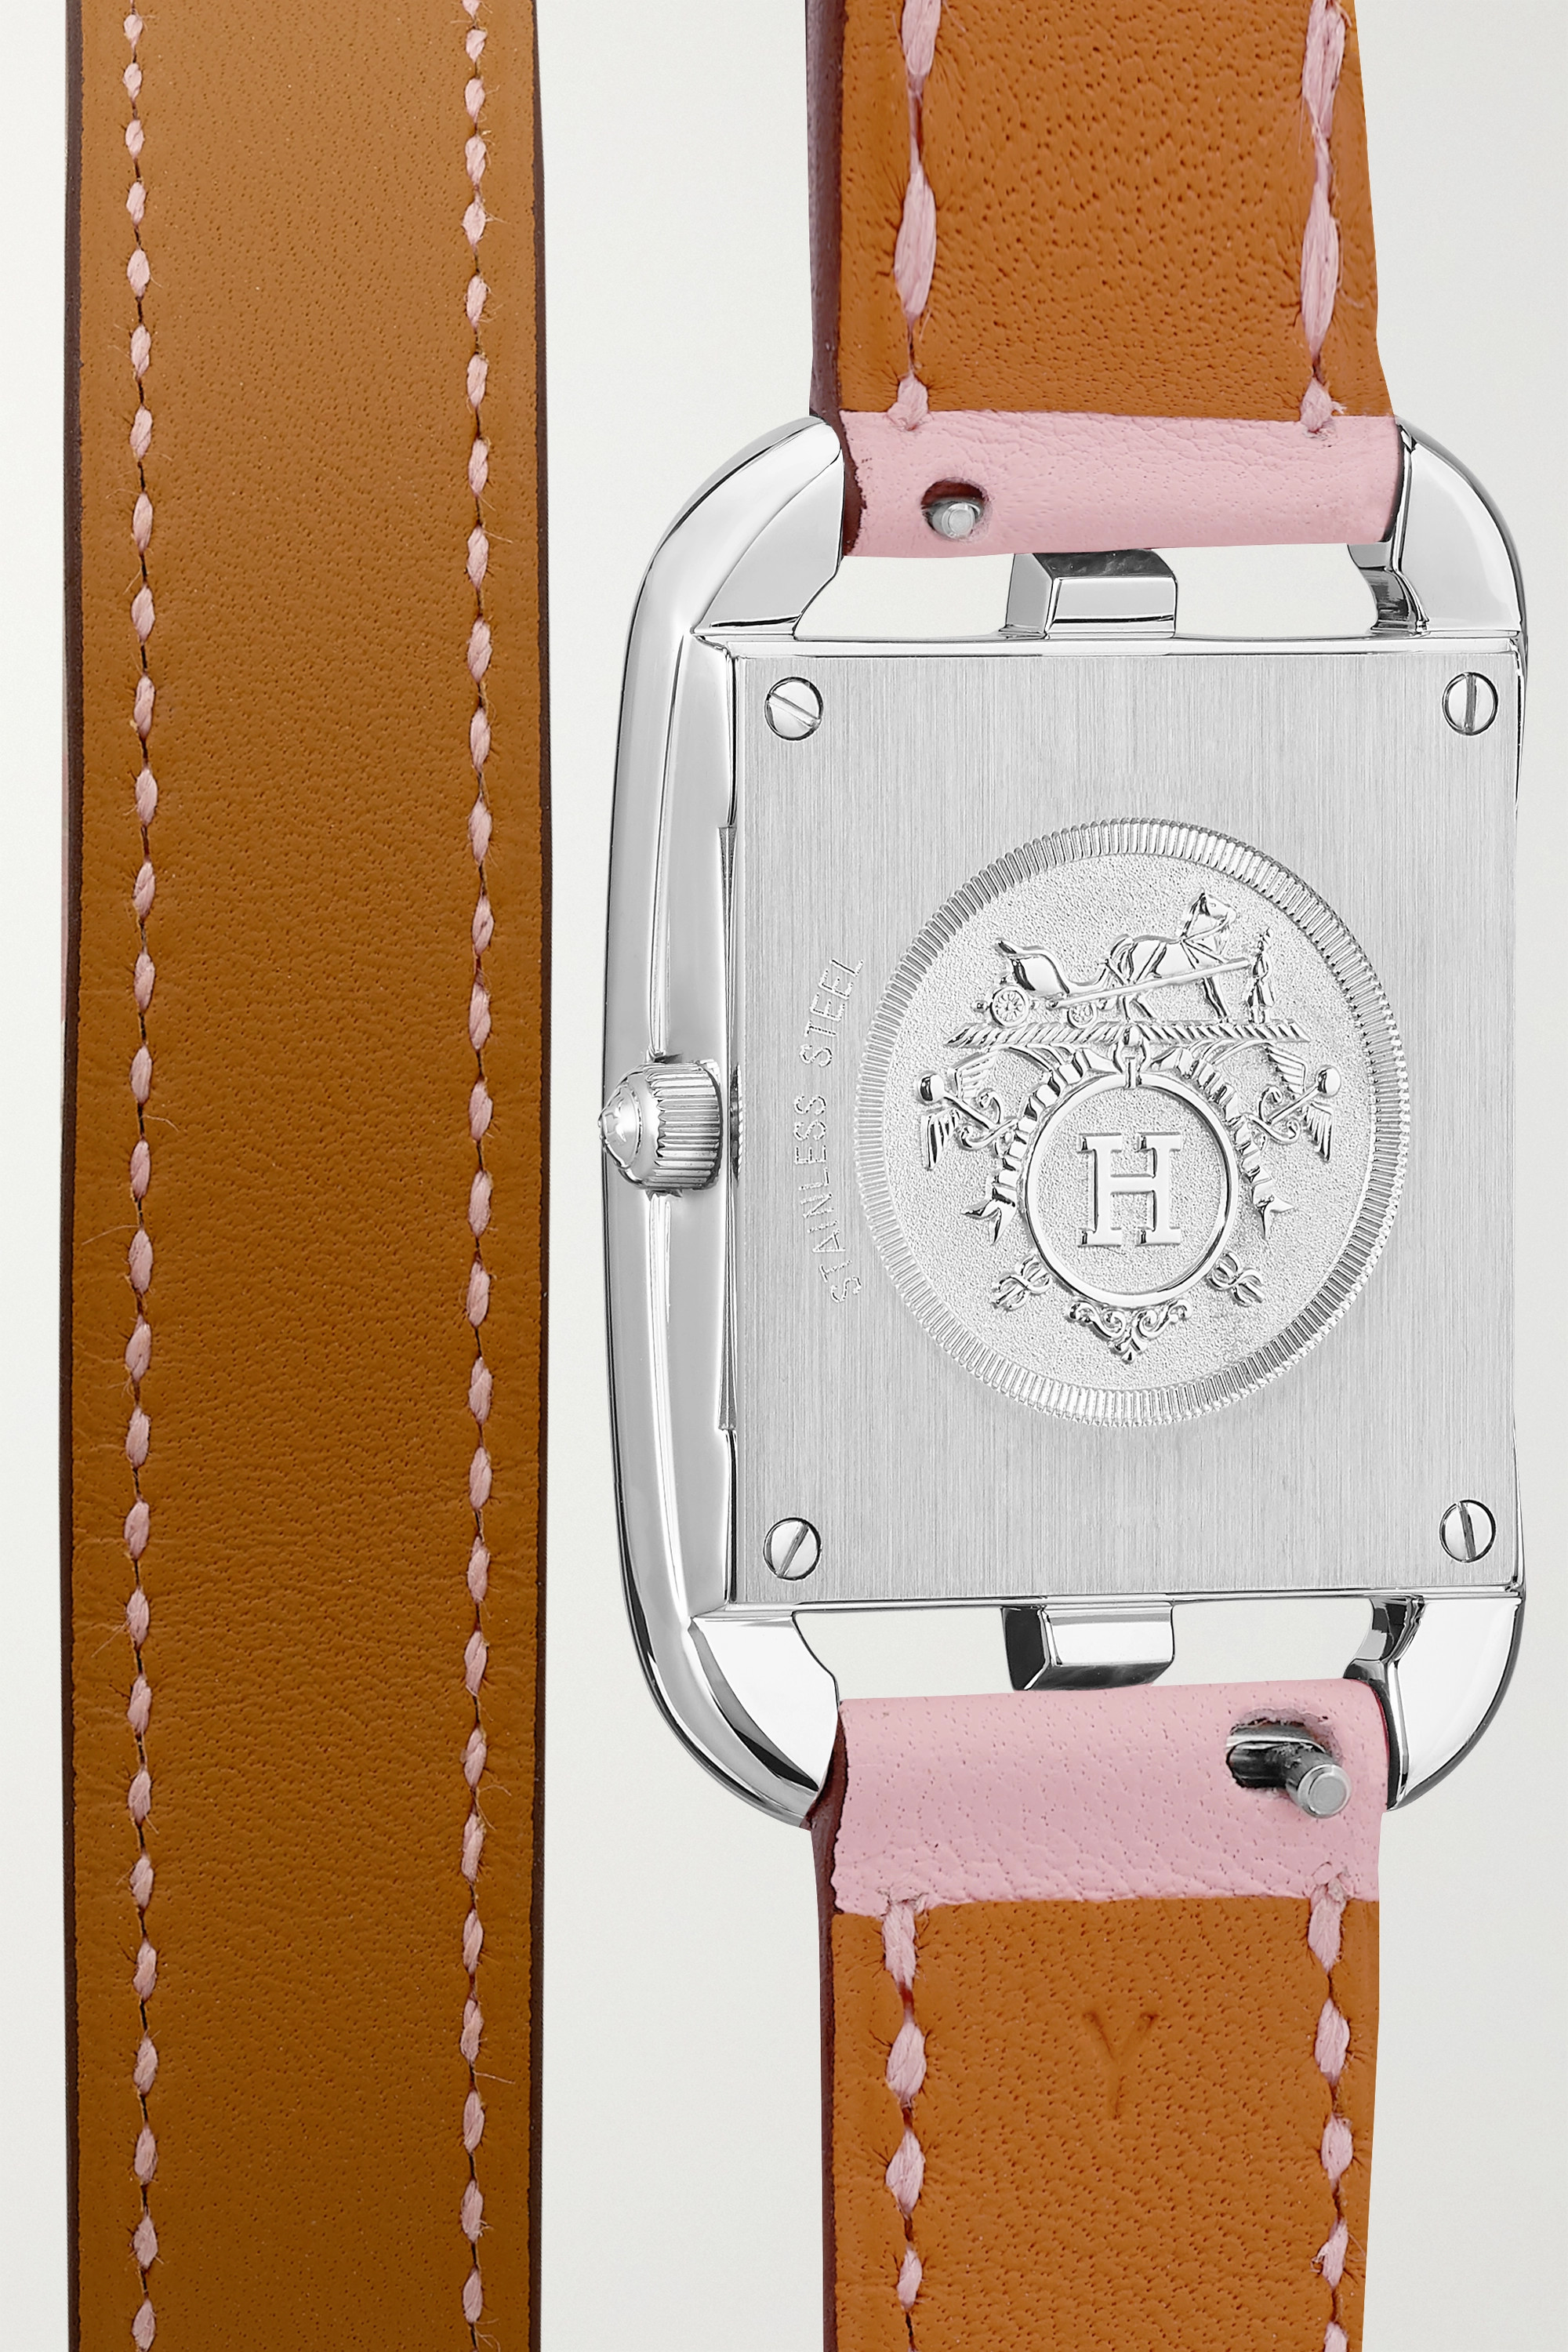 Hermès Timepieces Cape Cod Double Tour 23mm small stainless steel, leather, mother-of-pearl, sapphire and diamond watch